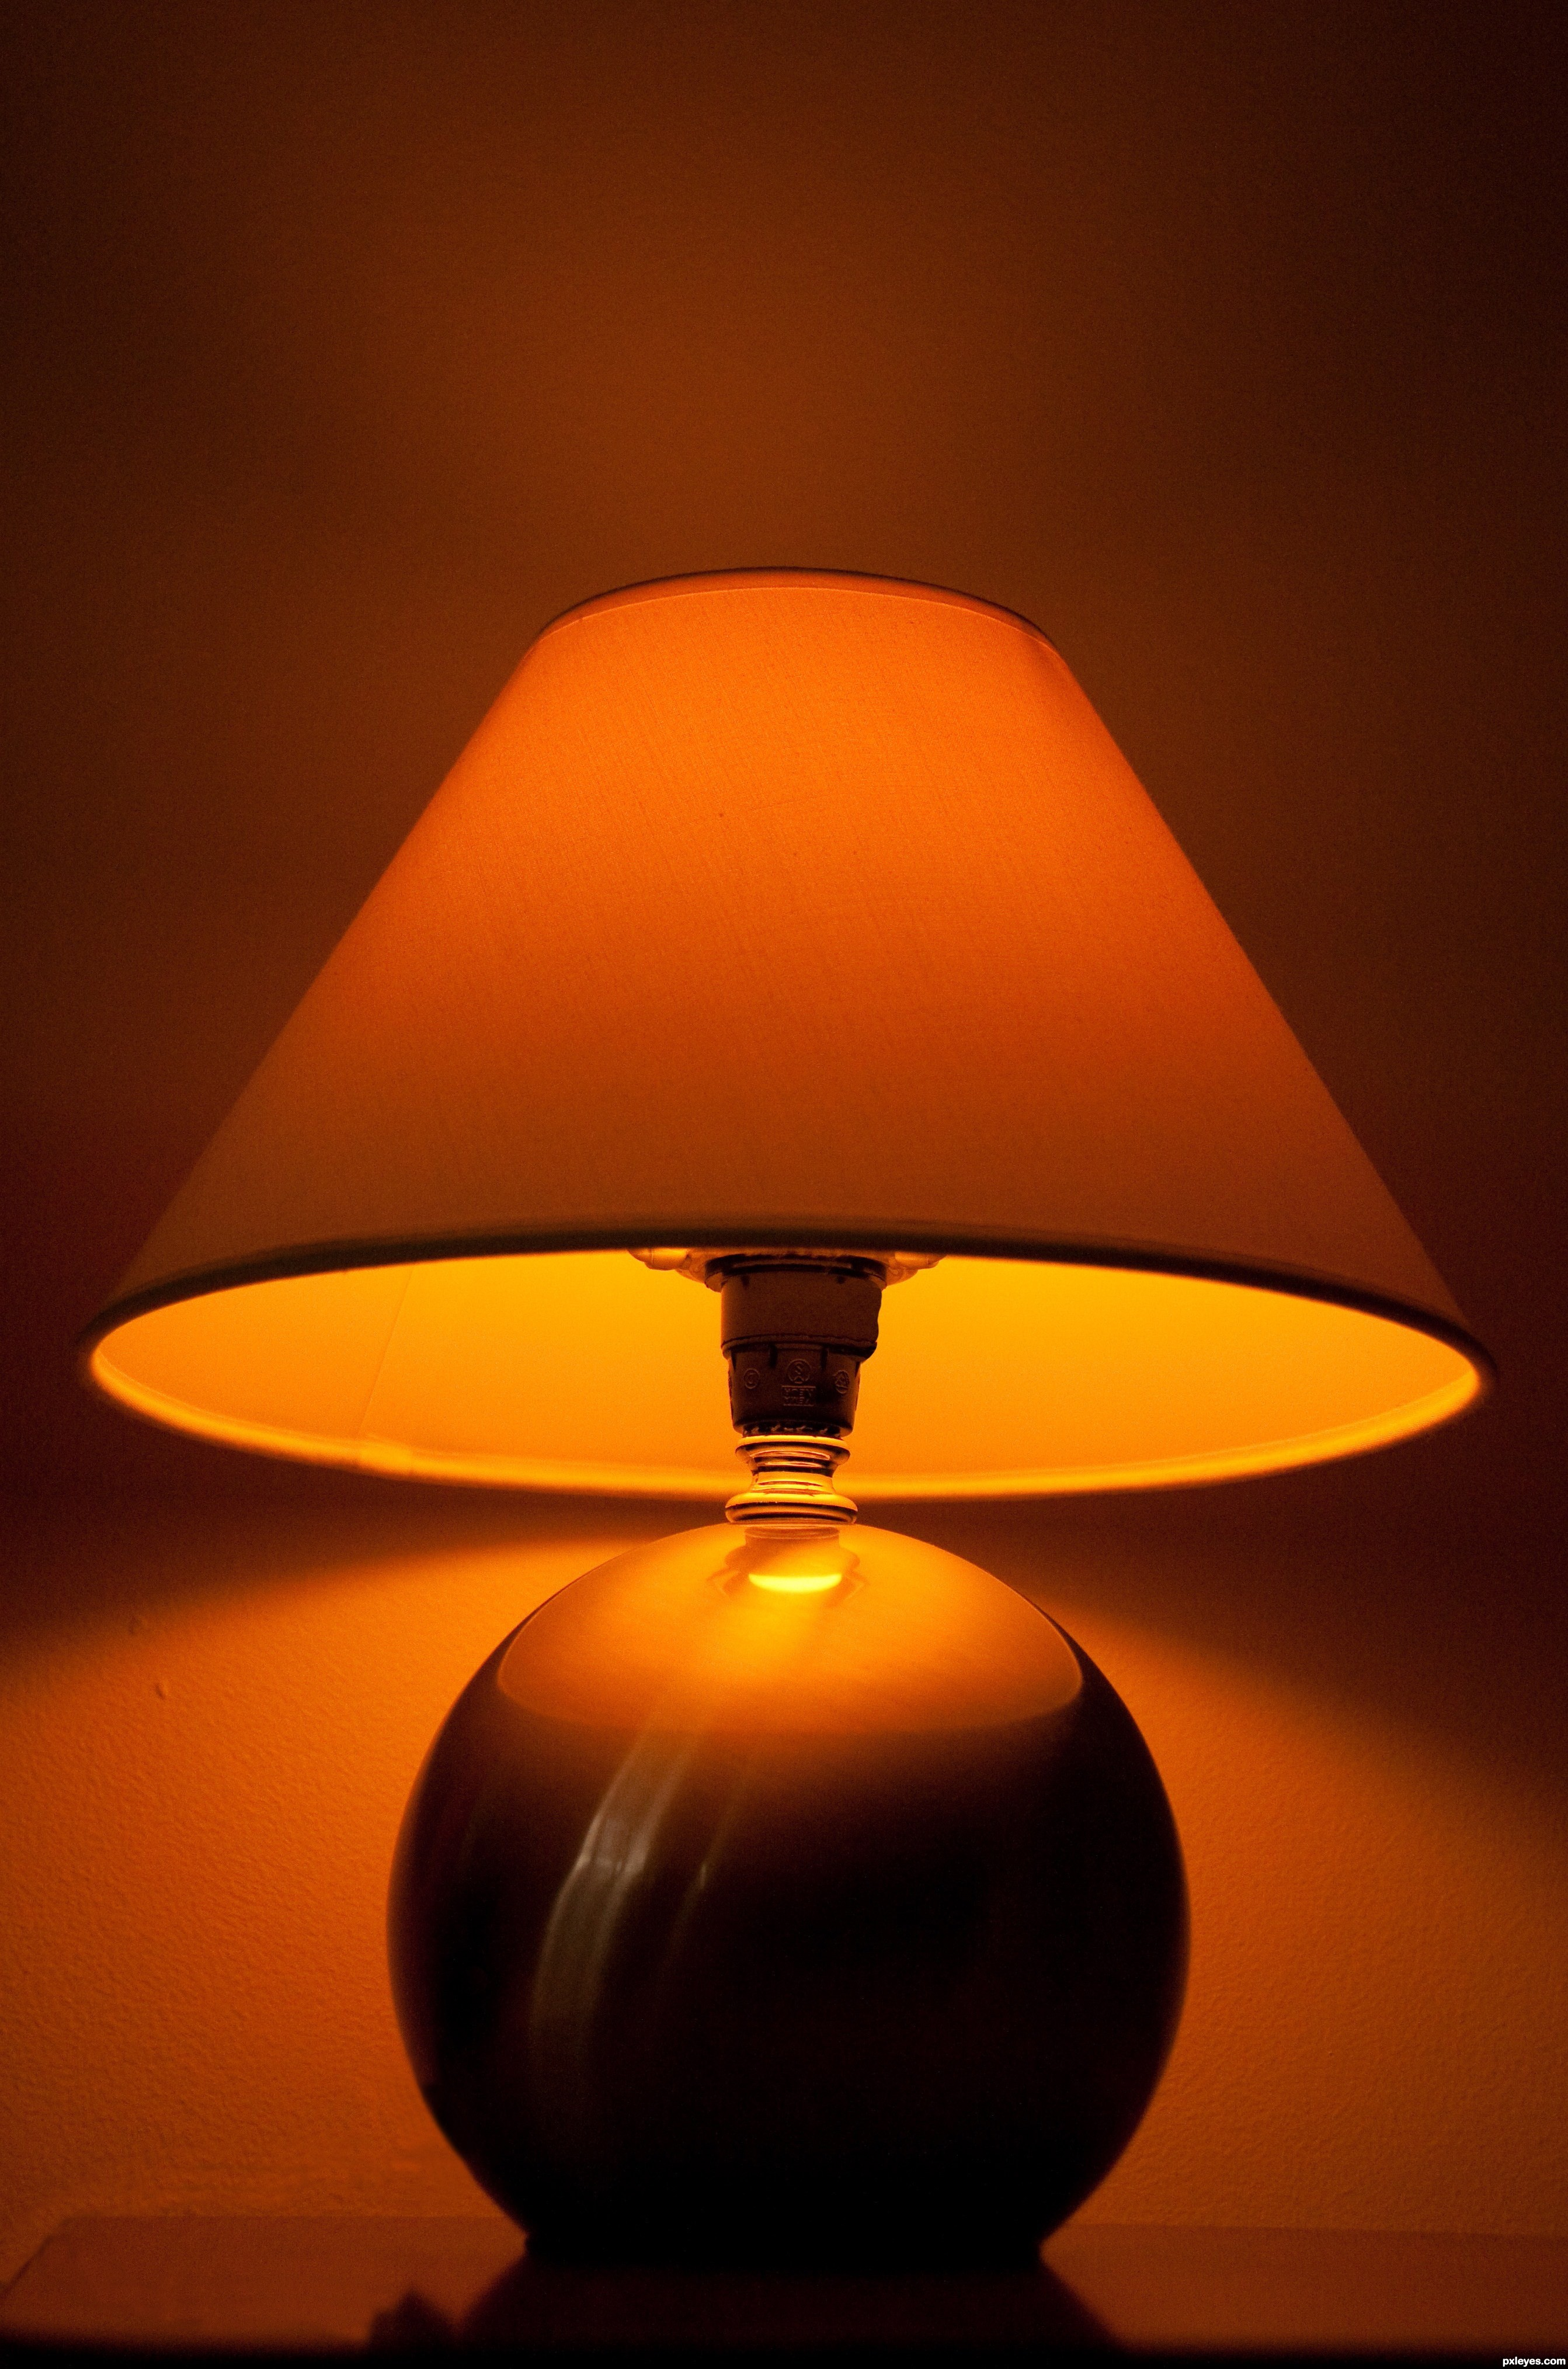 night lamp picture by bartoszwozniak for night lights photography. Black Bedroom Furniture Sets. Home Design Ideas